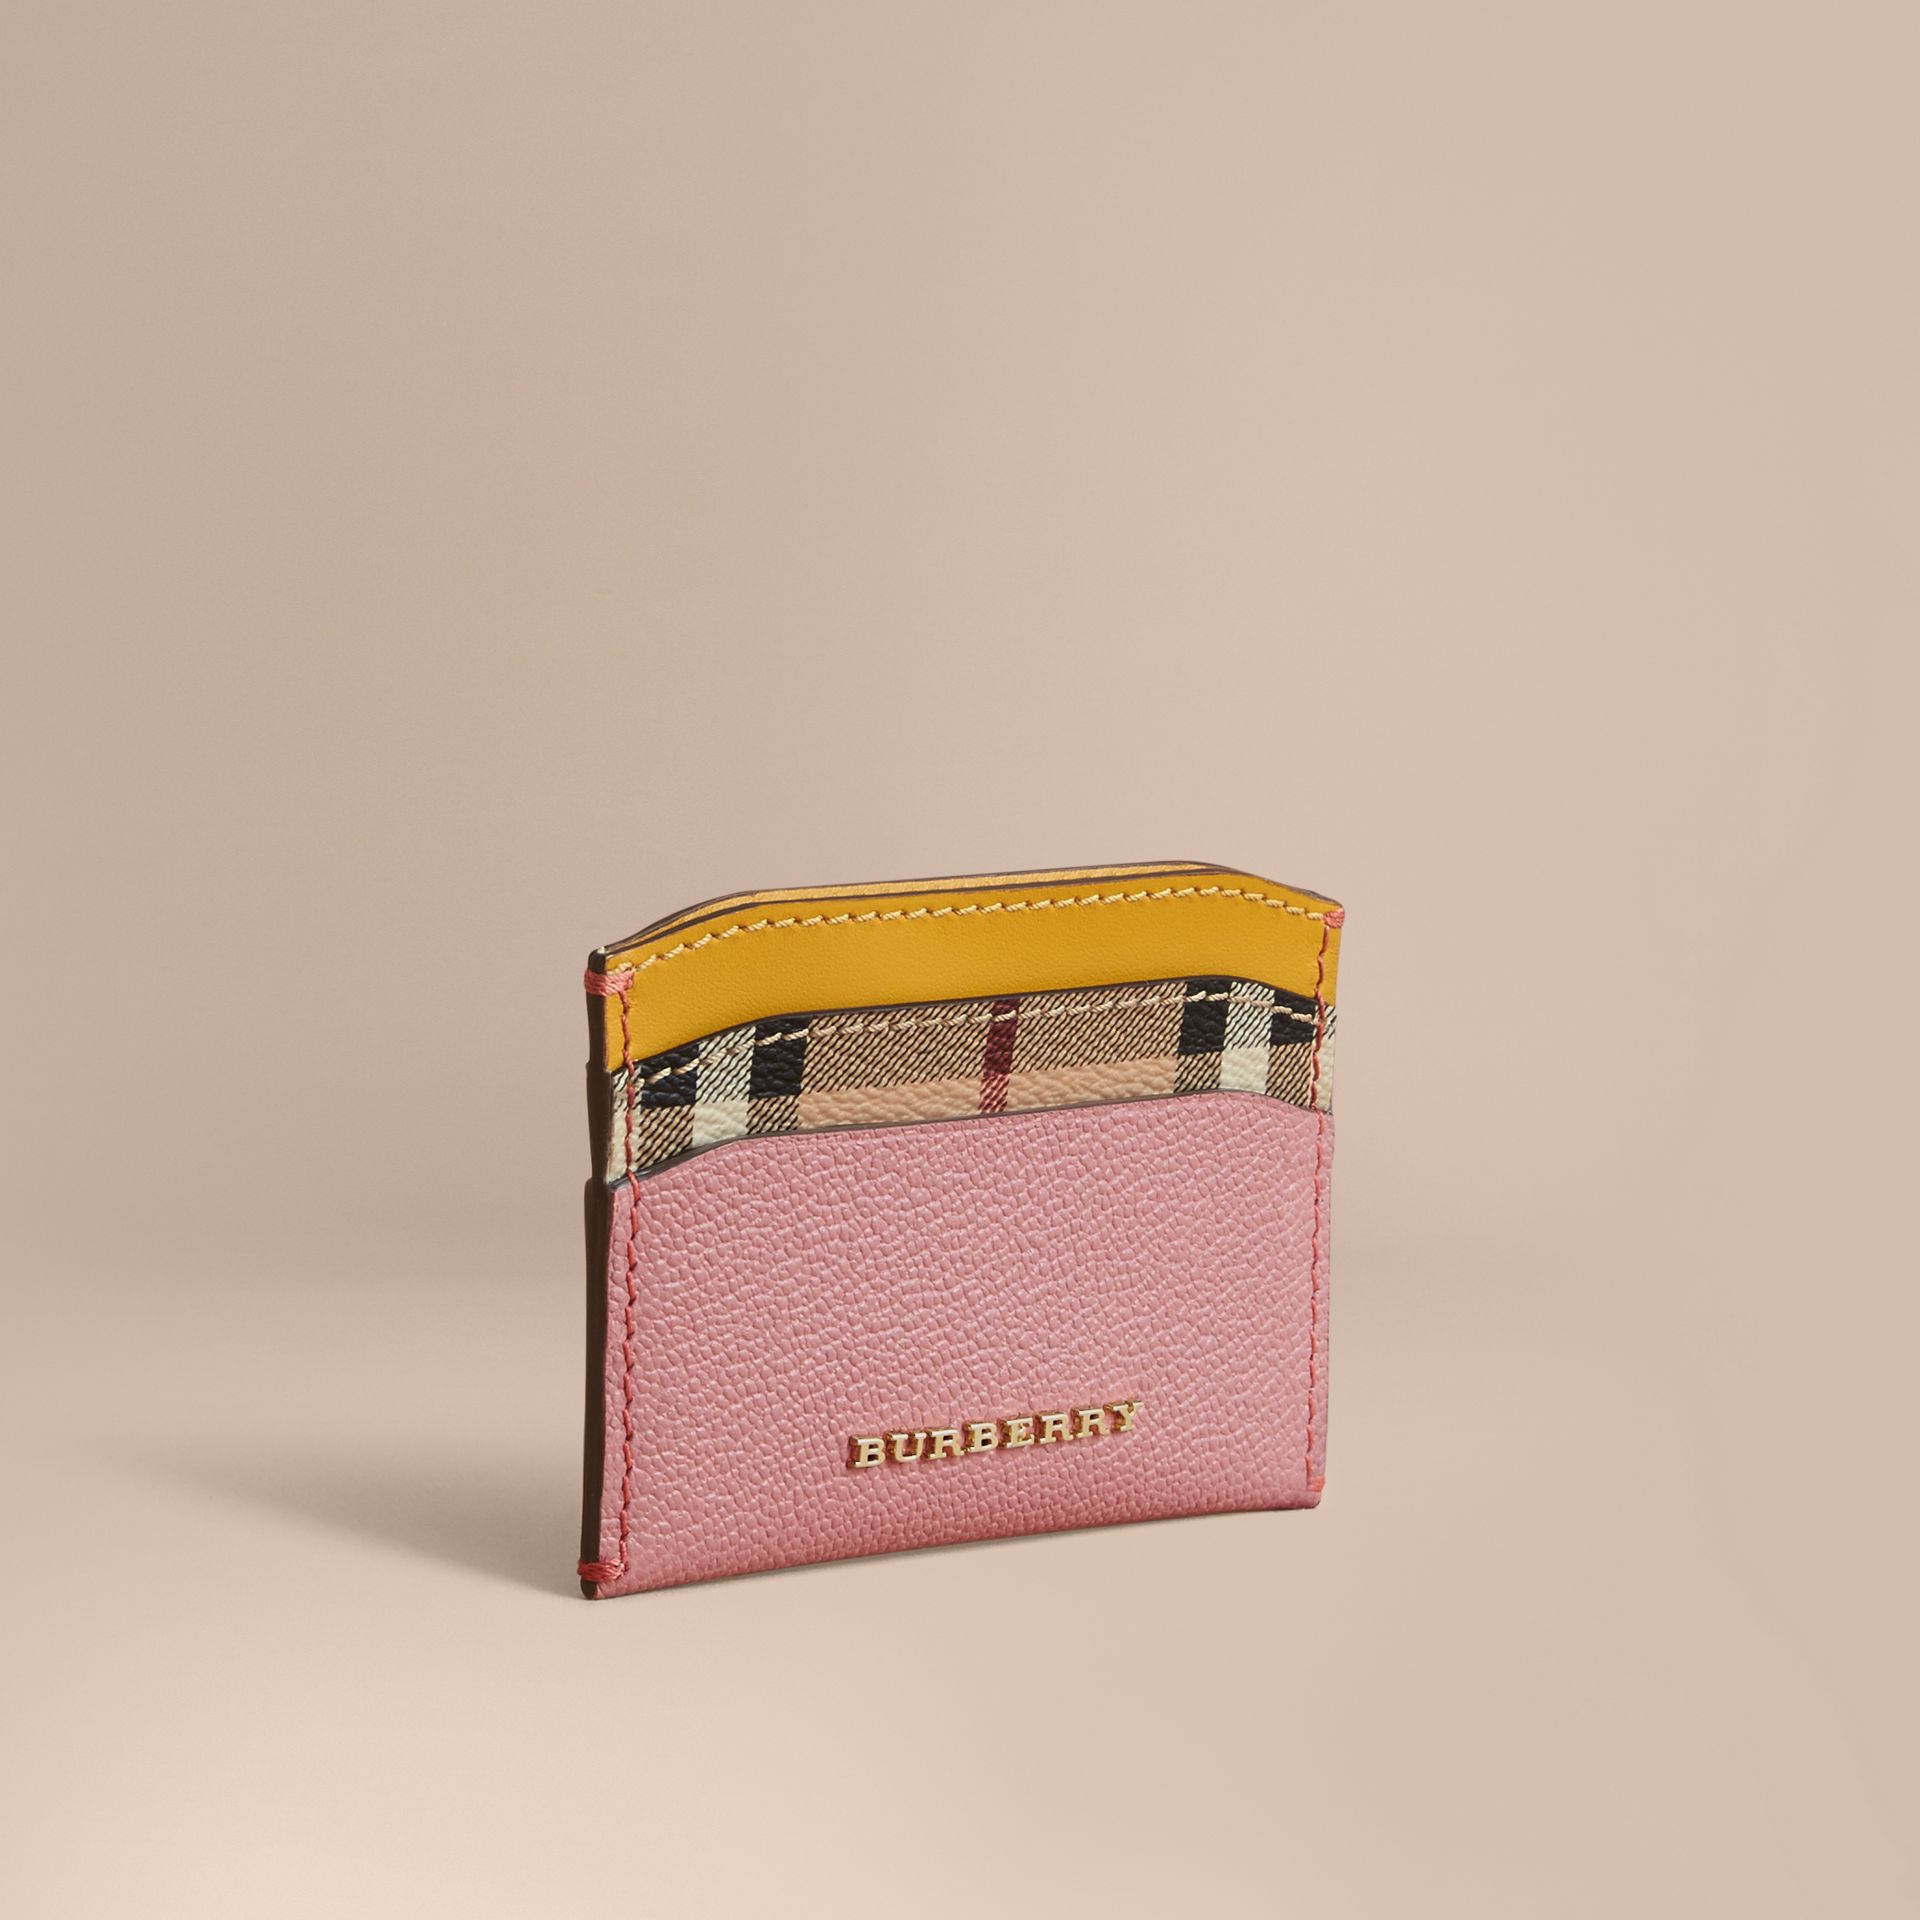 Colour Block Leather and Haymarket Check Card Case in Dusty Pink / Multi - Women | Burberry - gallery image 1